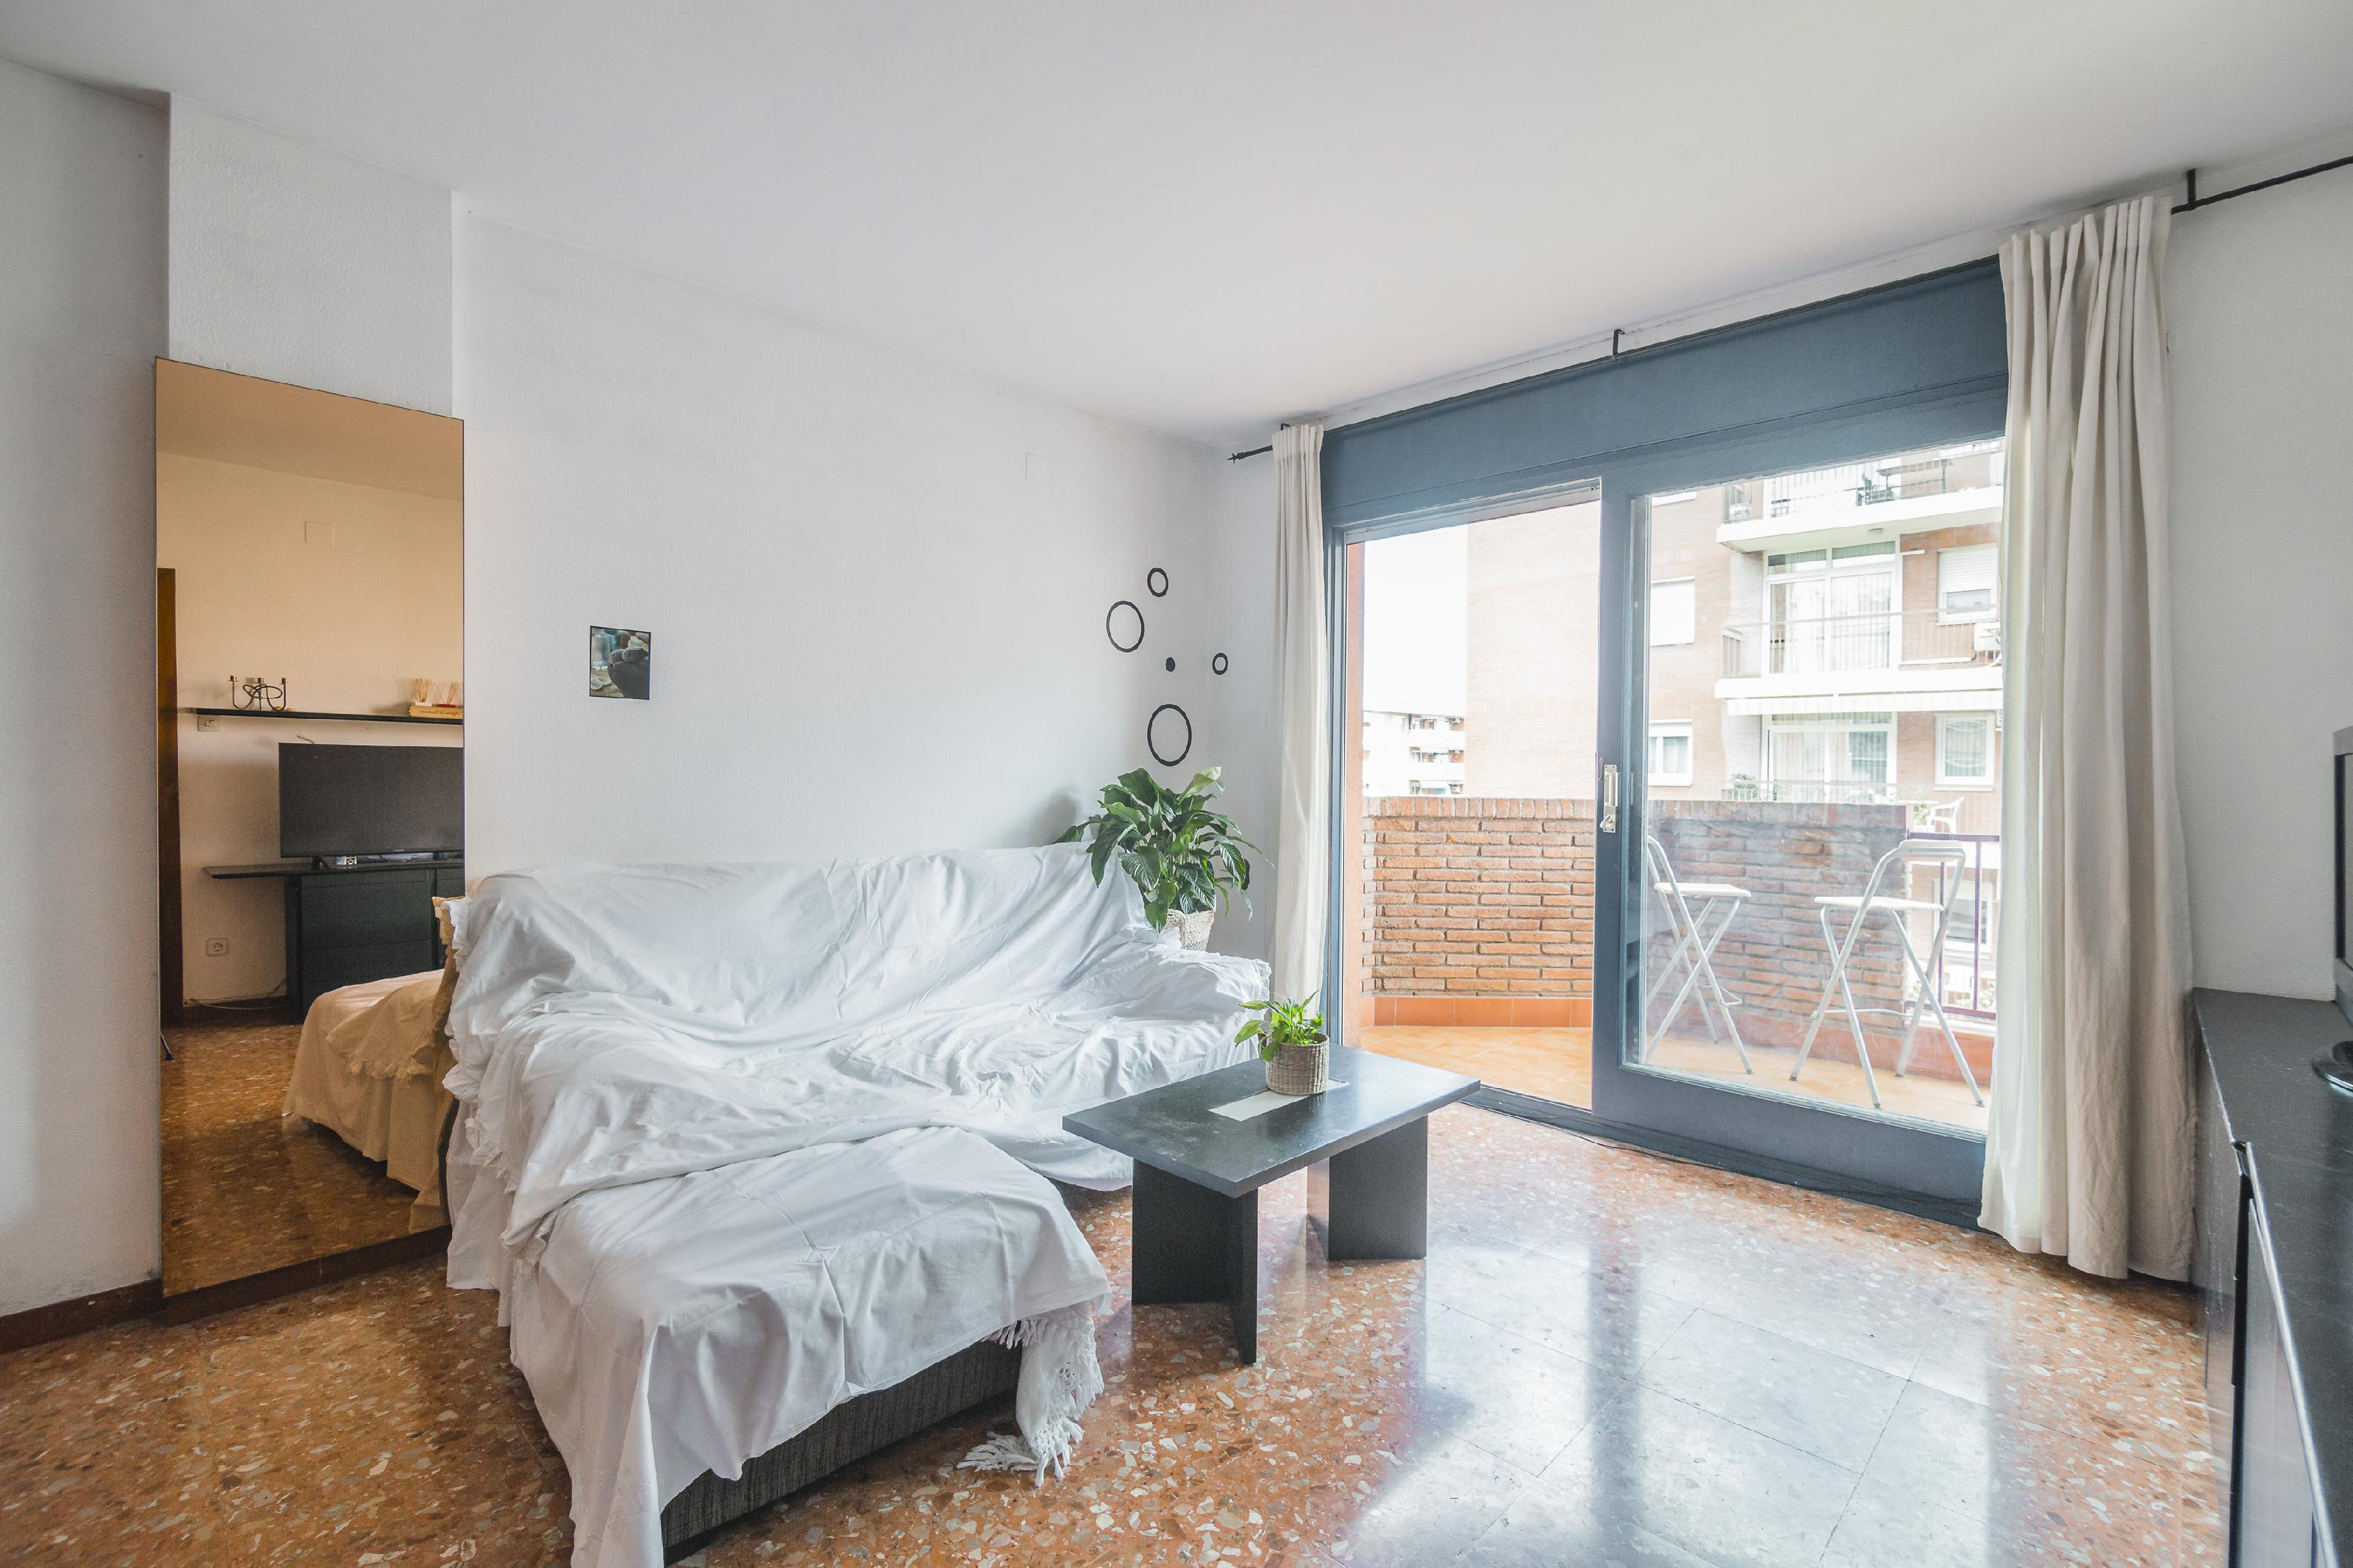 239426 Flat for sale in Les Corts, Les Corts 5